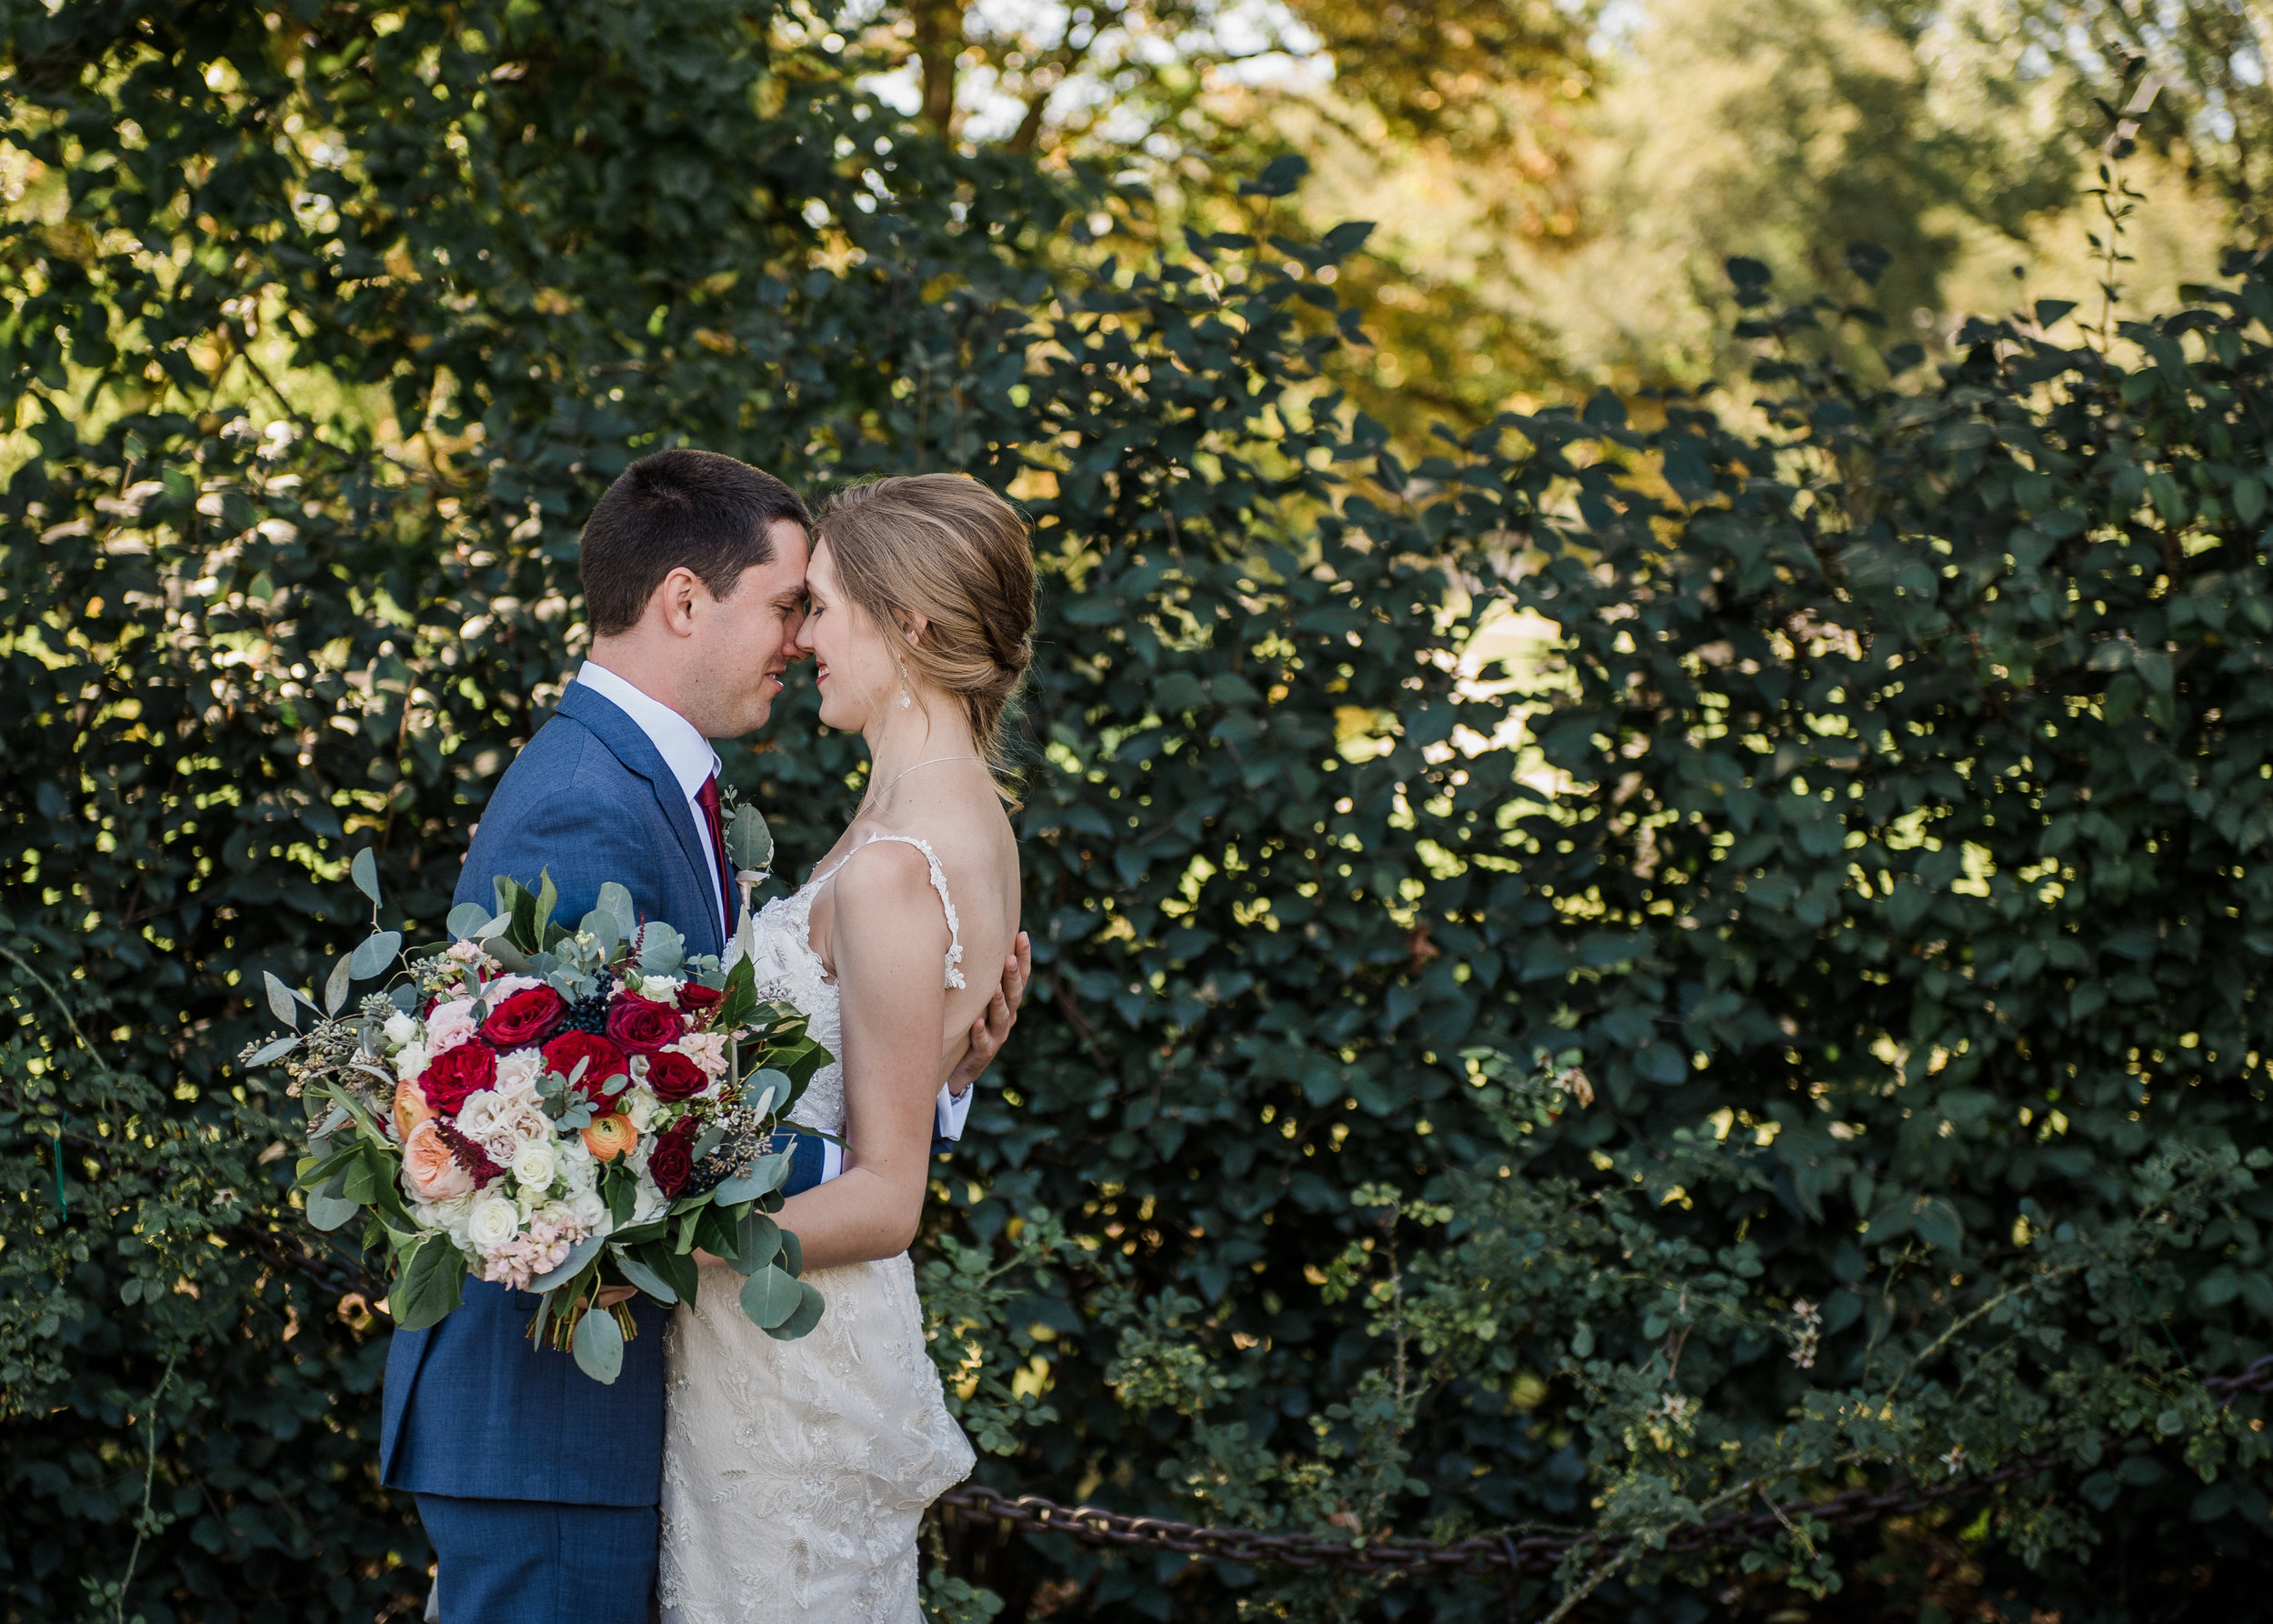 Emily & Scott Wedding | Black Coffee Photo Co 014.jpg